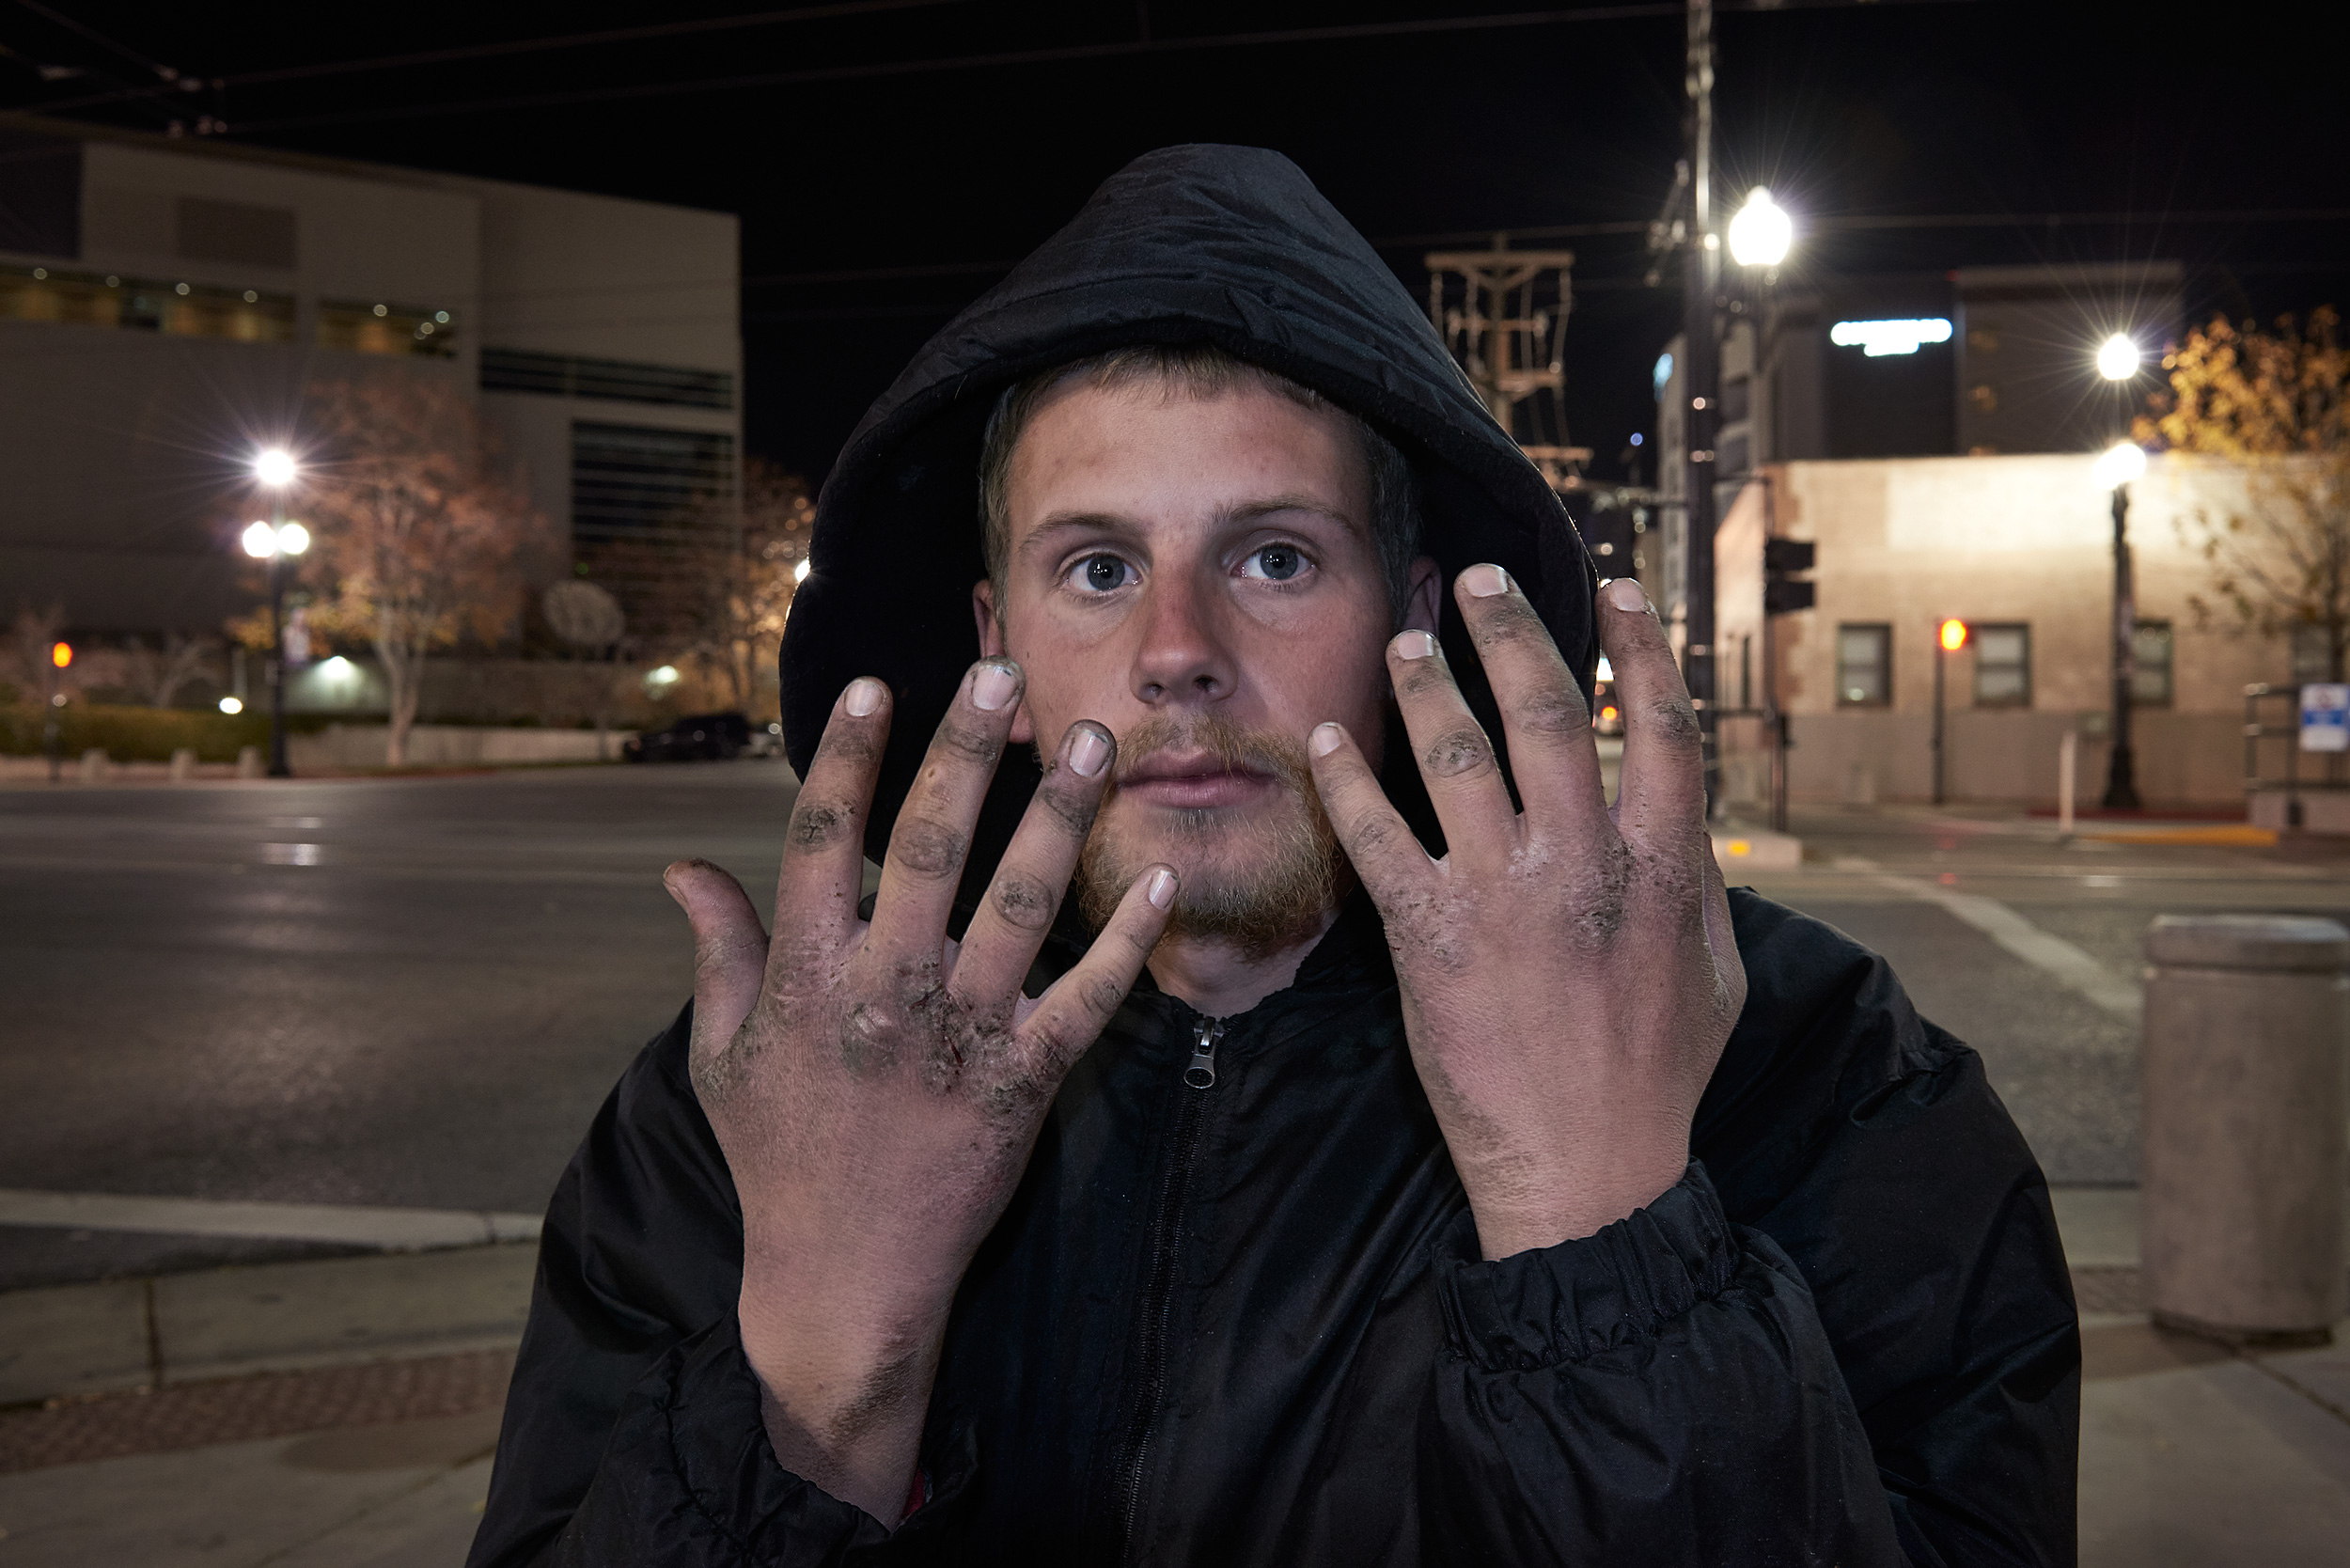 This is a project on homelessness commissioned by Hotel RL to raise funds for homeless shelters in various locations across the United States.